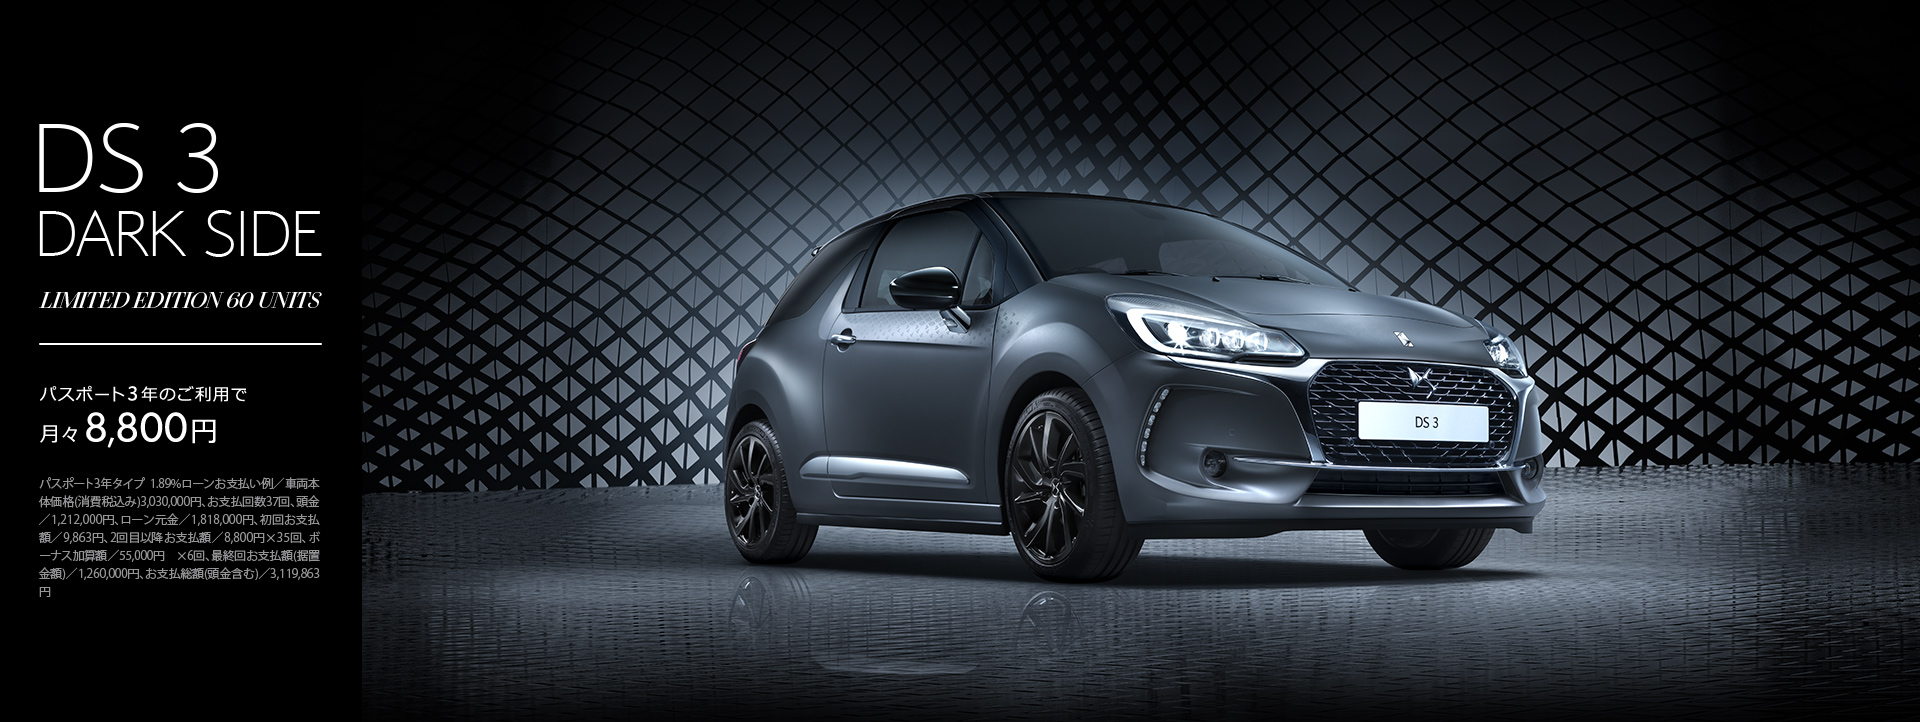 DS3 DARK SIDE DEBUT FAIR